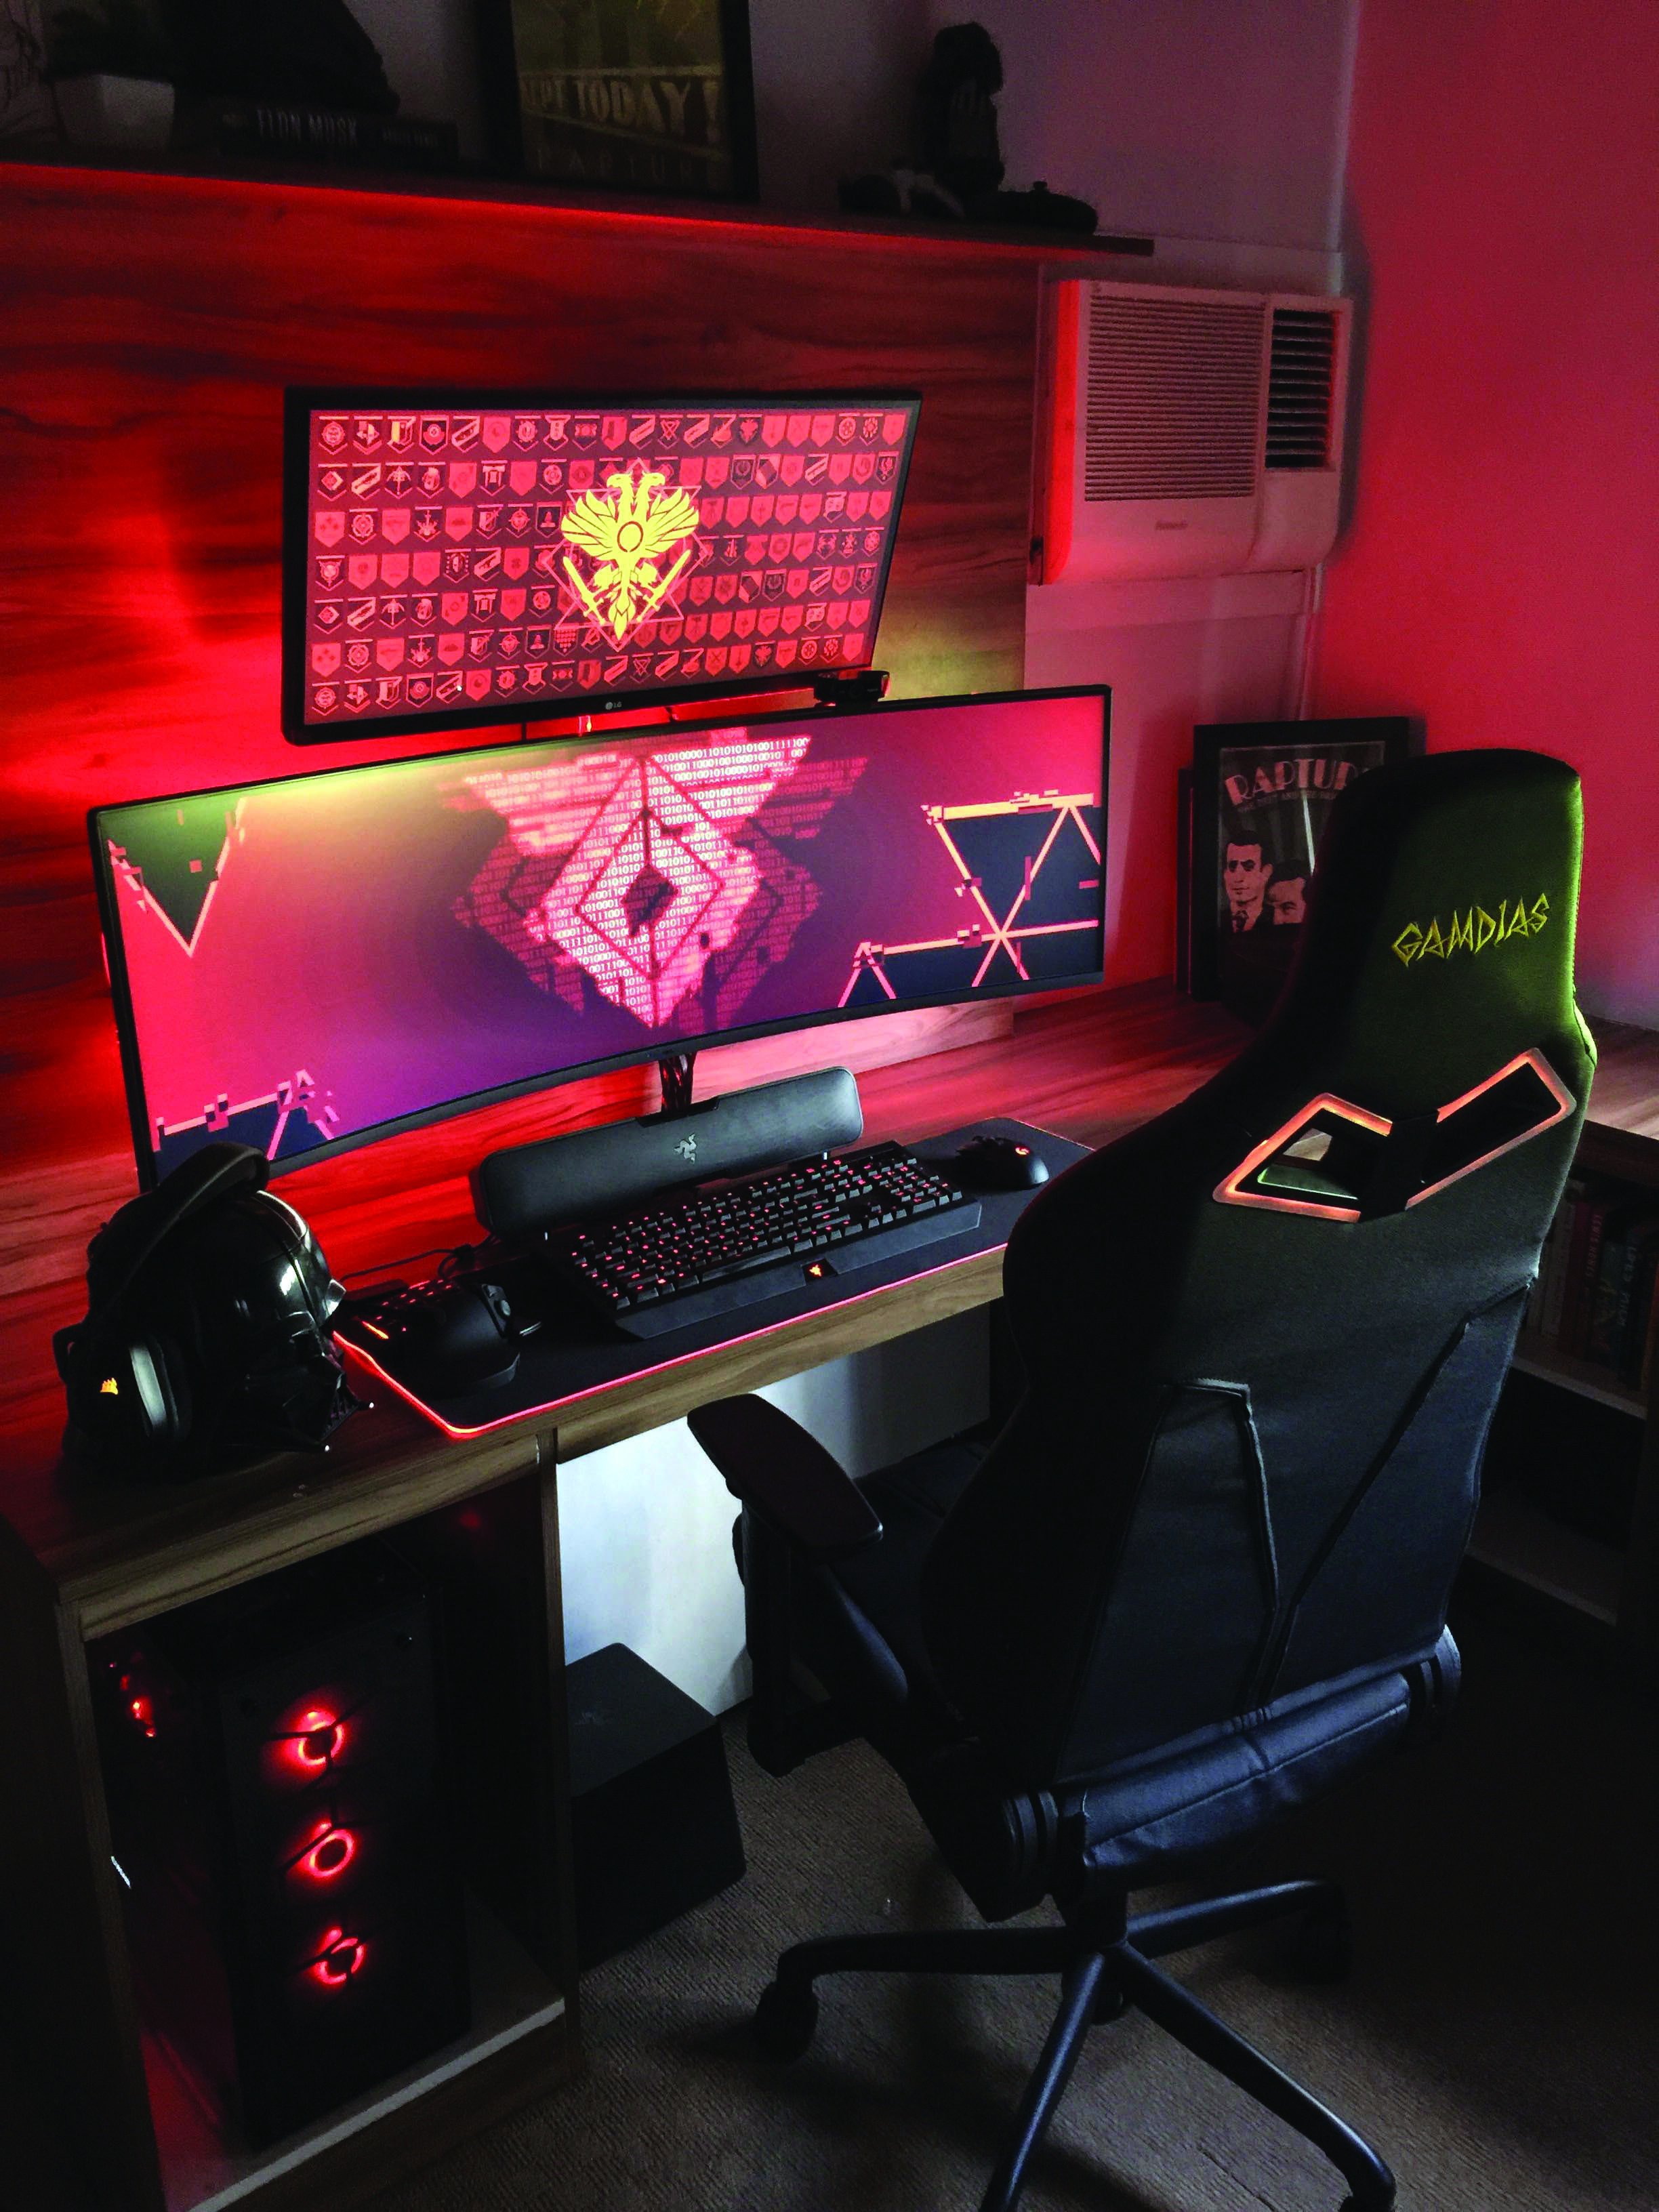 Gaming Computer Desk | Gaming computer desk, Gaming room ...